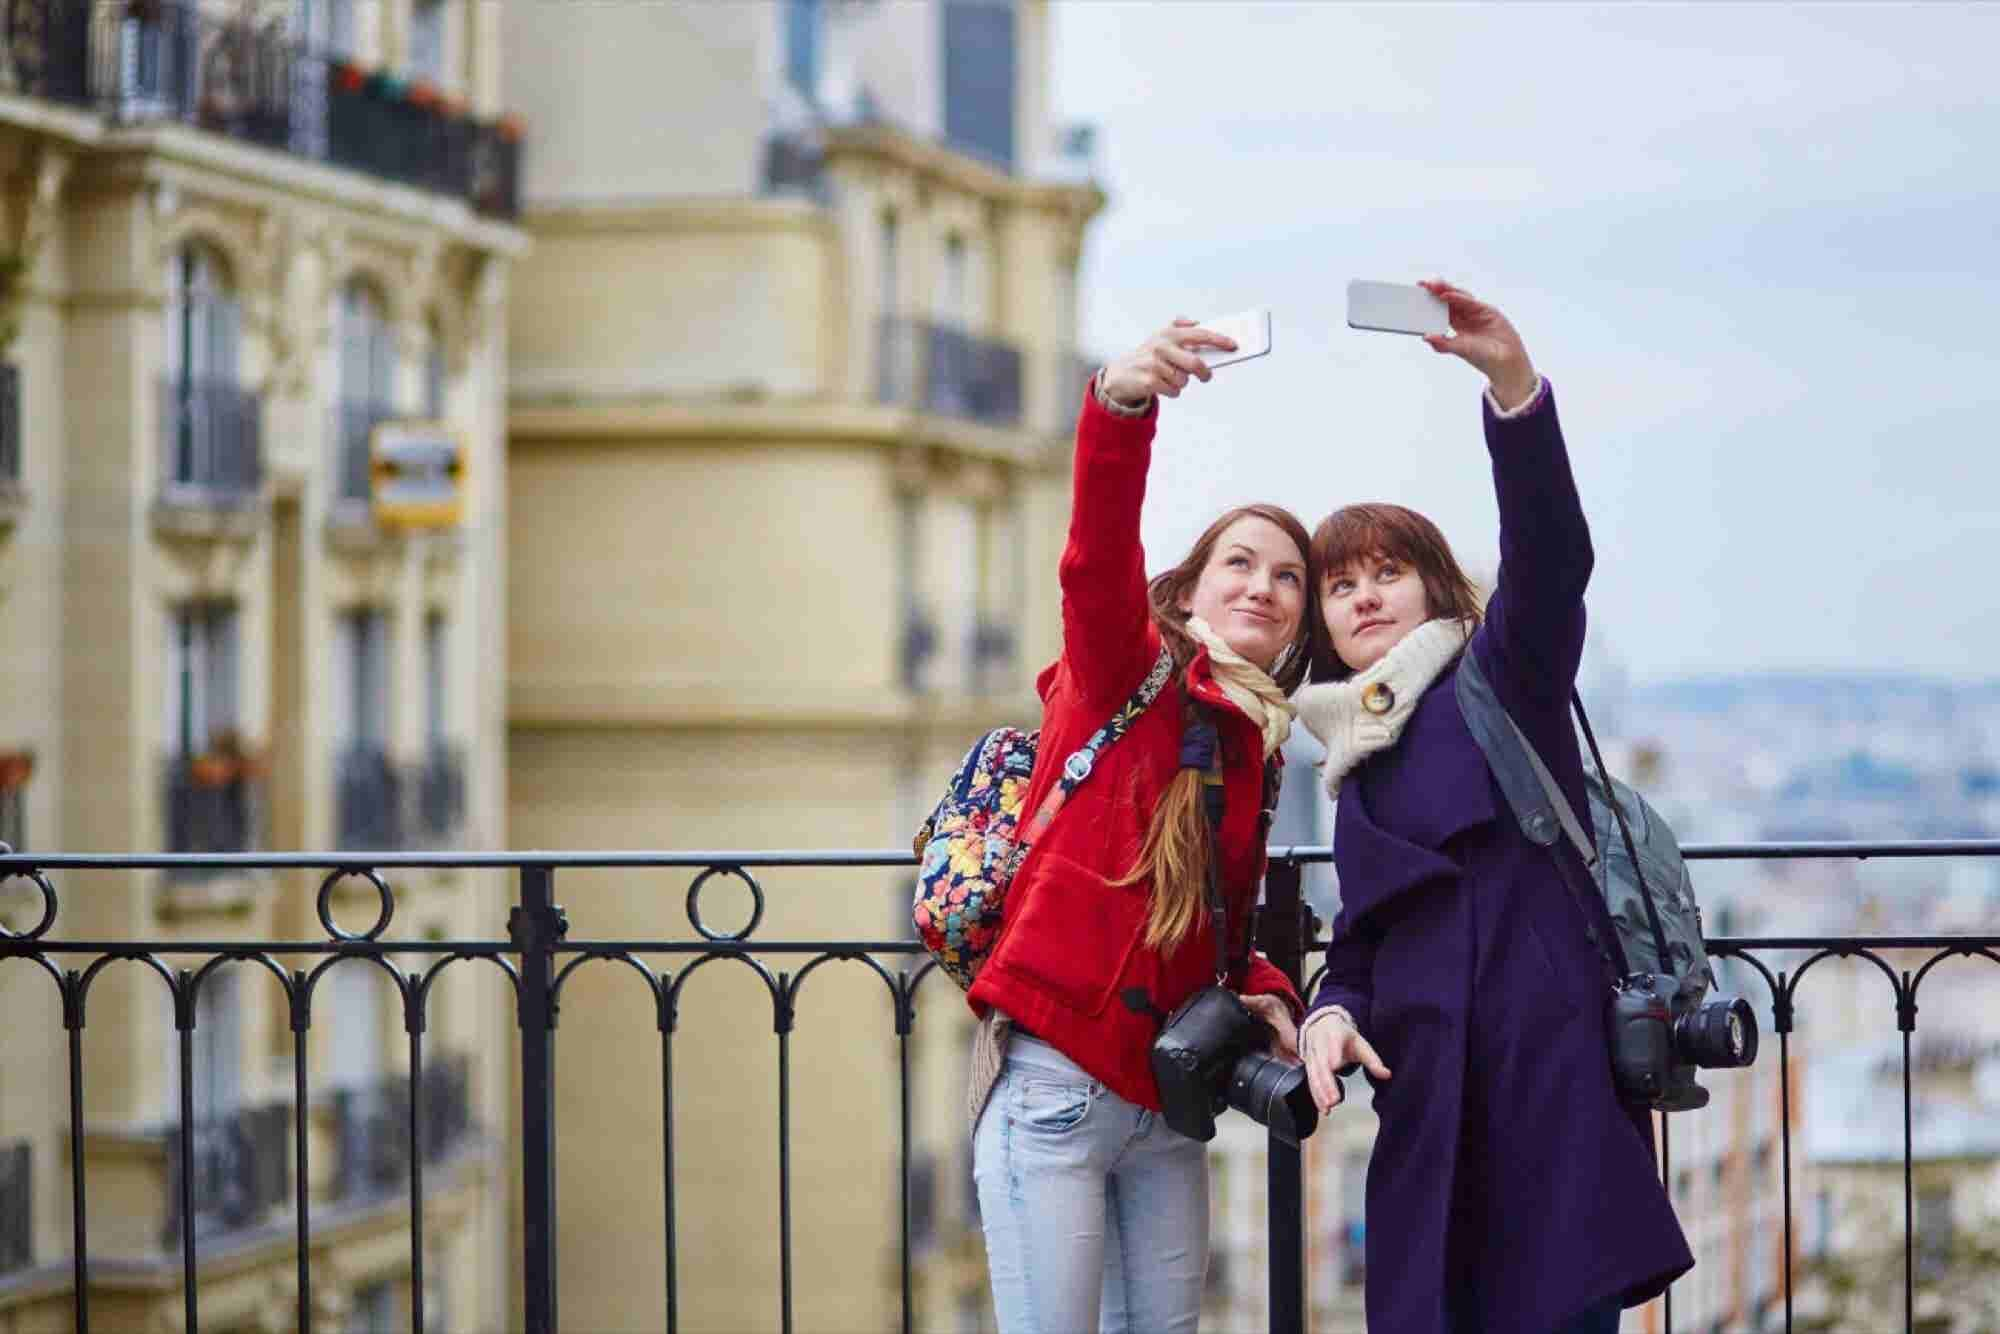 4 Ways Travel Brands Should Use Instagram to Connect With Millennials